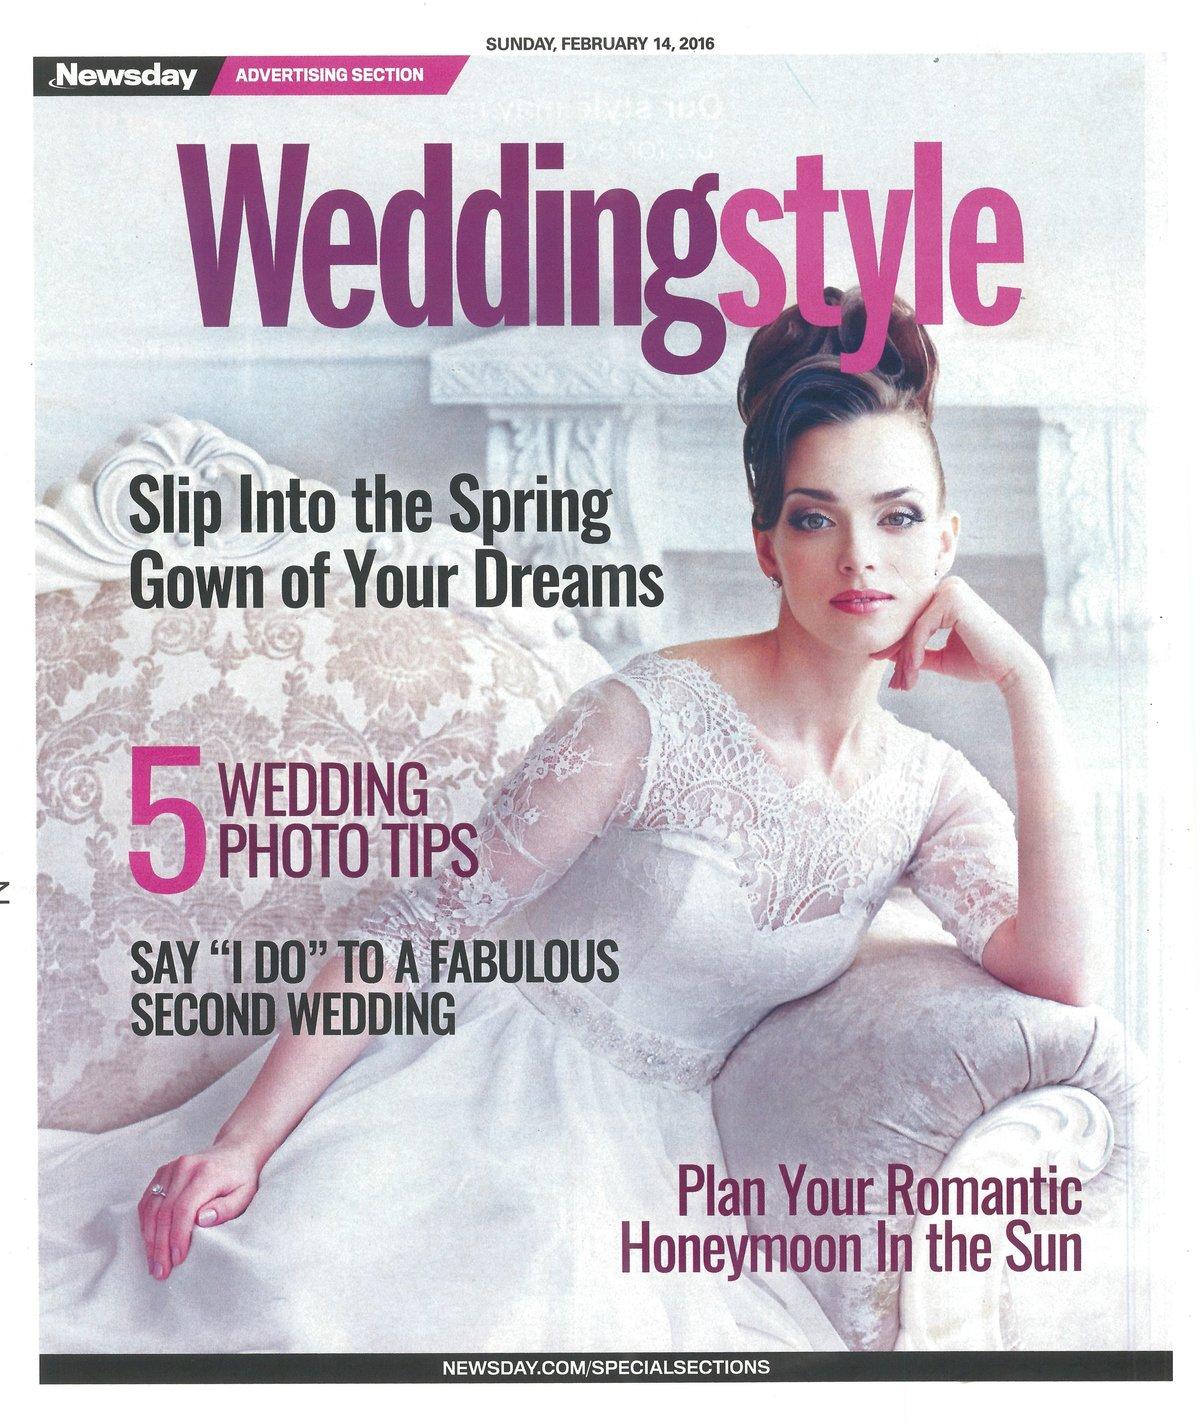 Newsday WeddingStyle February 14, 2016